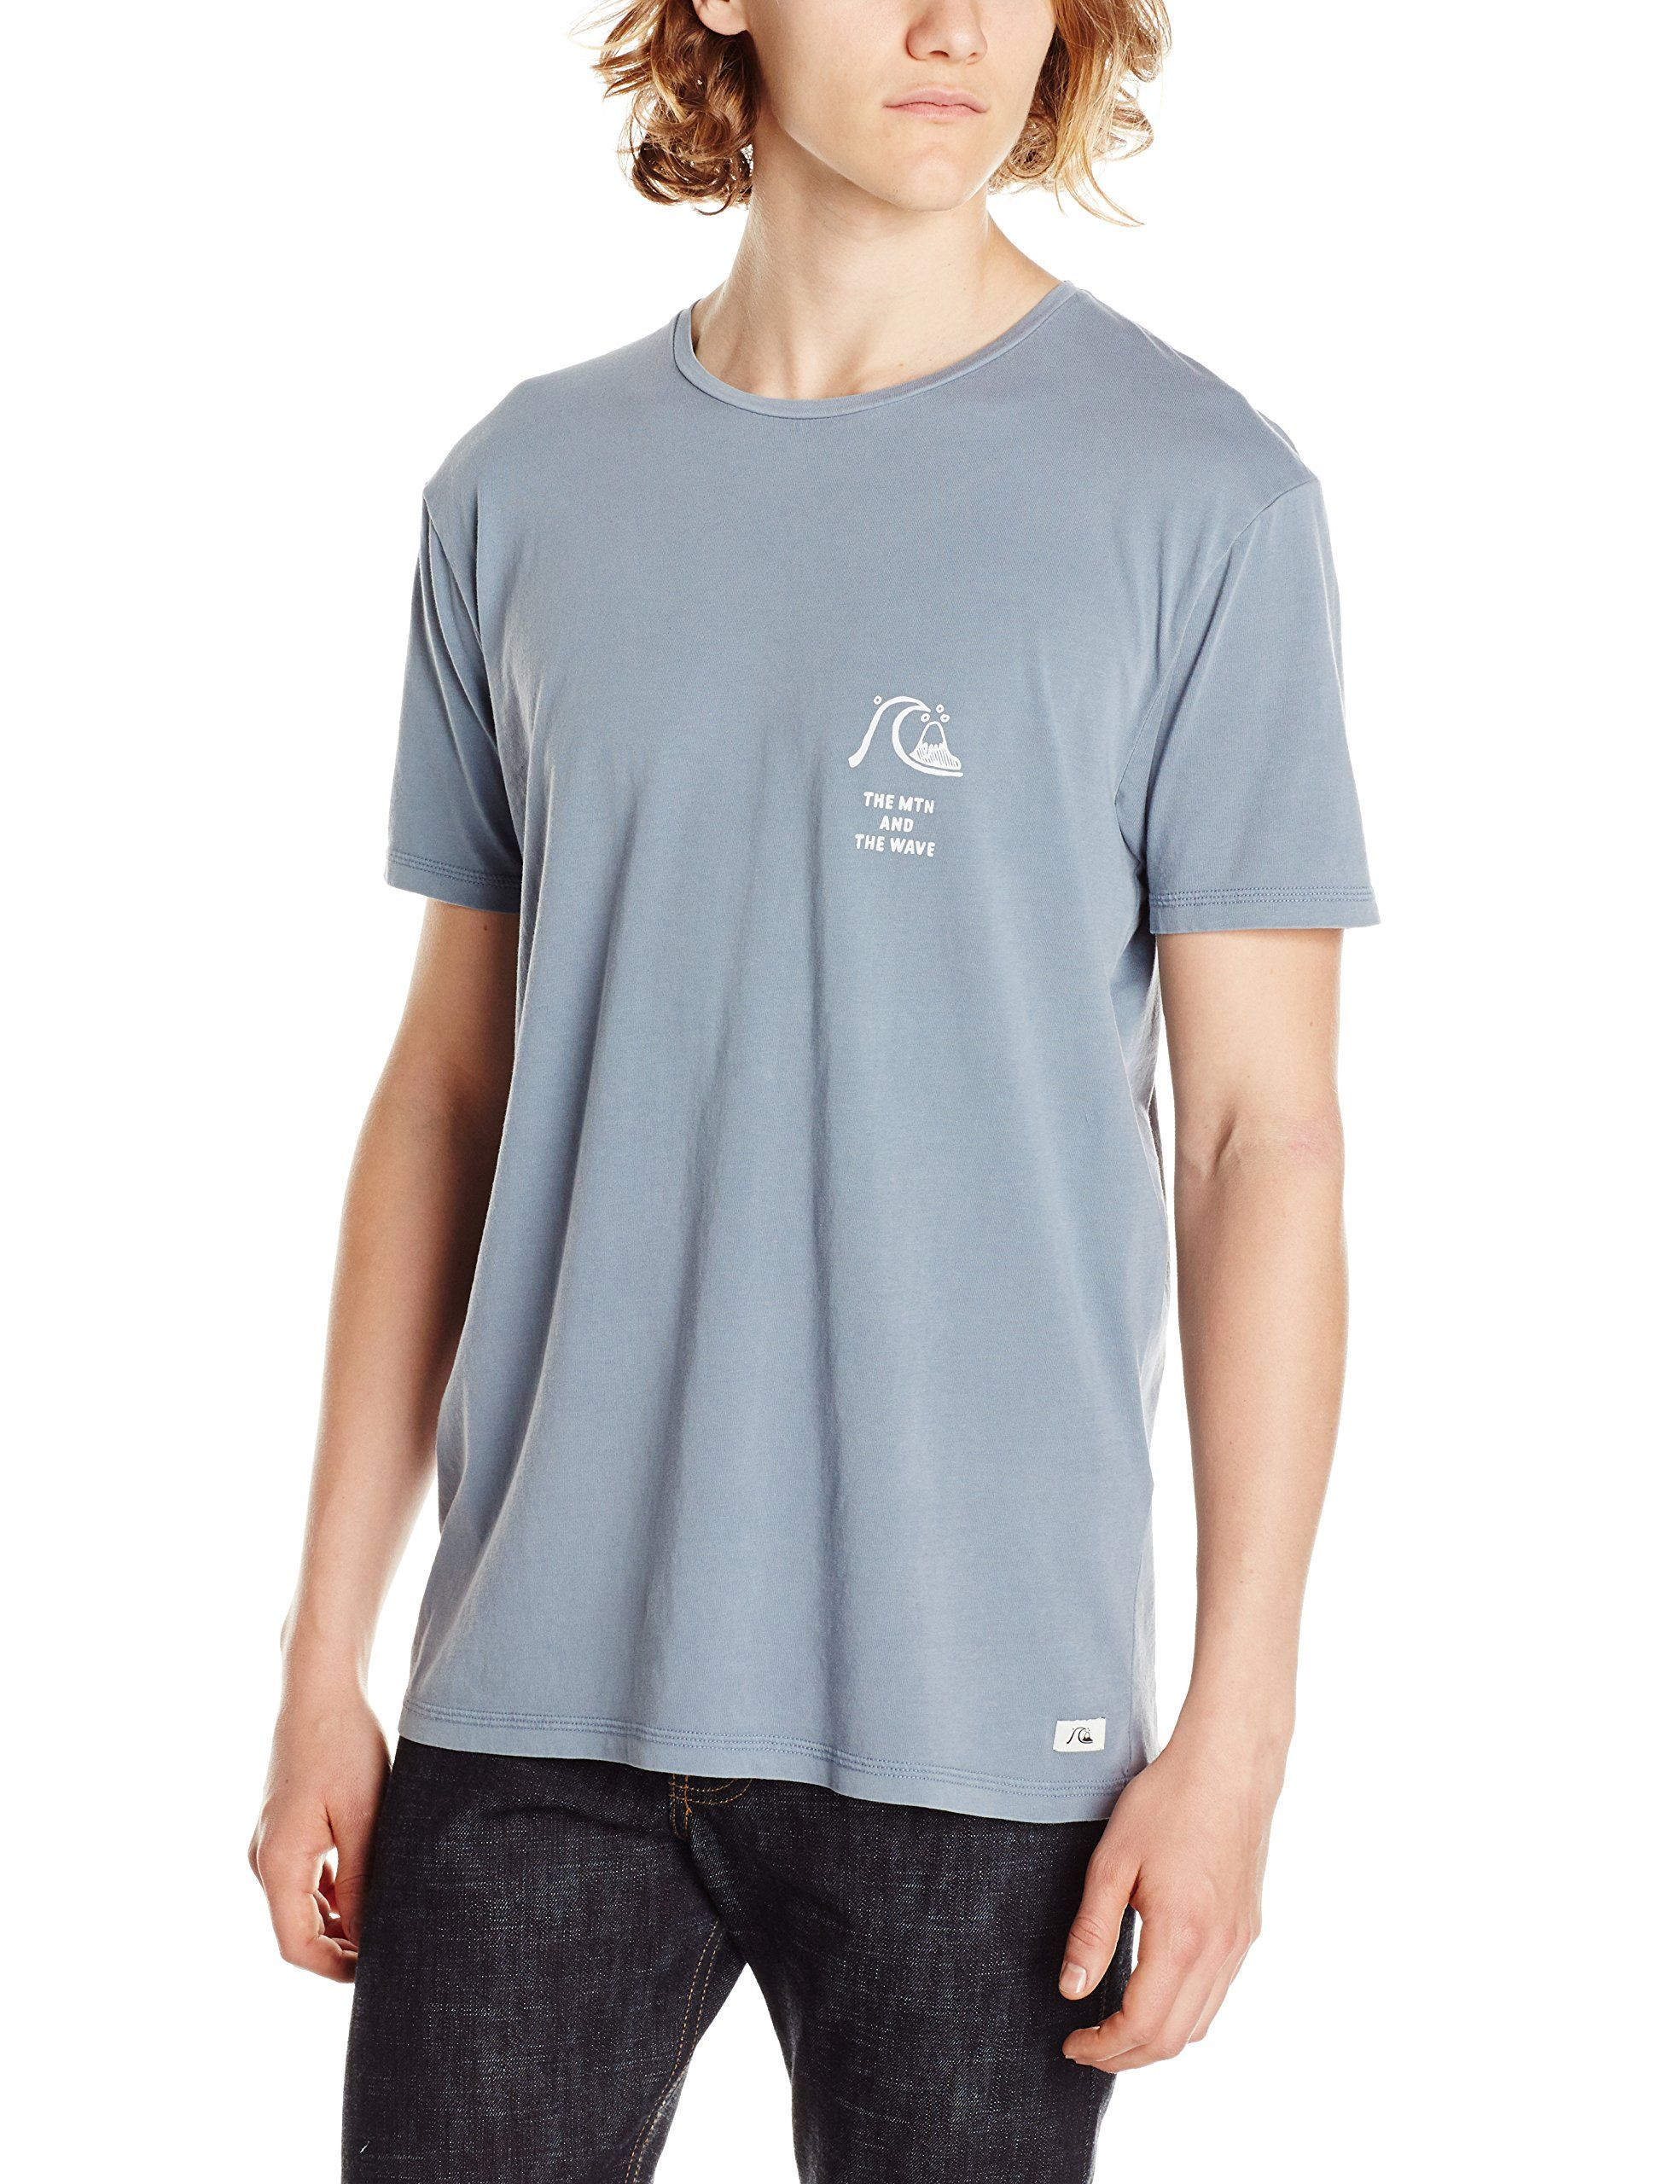 Quiksilver Men's Garment Dyed Short Sleeve Bridge Brand T-Shirt, Flint Stone, Small